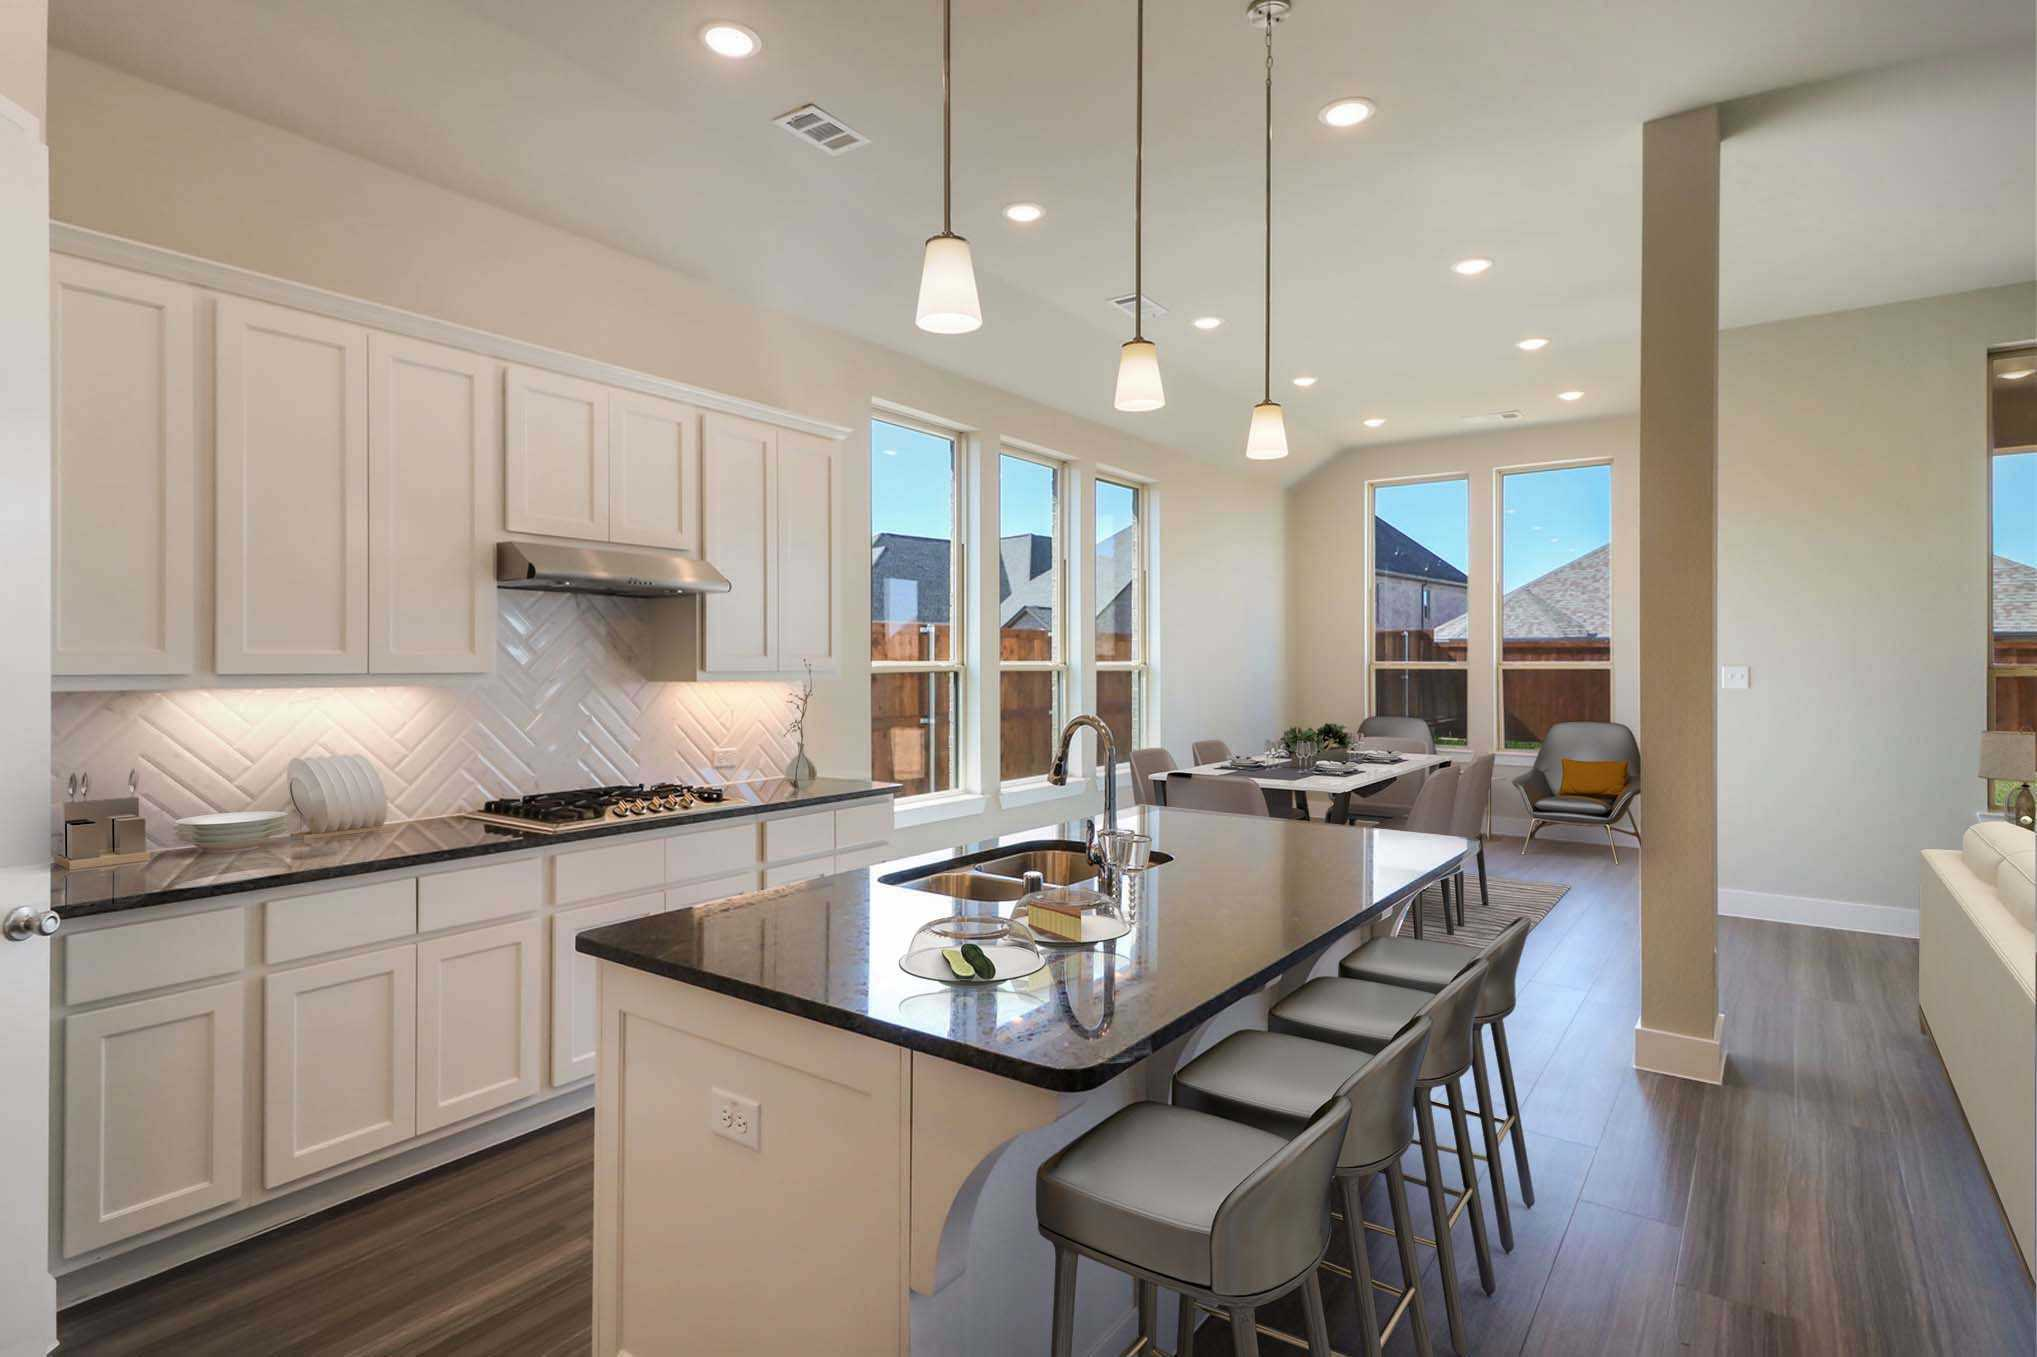 Kitchen featured in the Plan Milton By Highland Homes in Dallas, TX